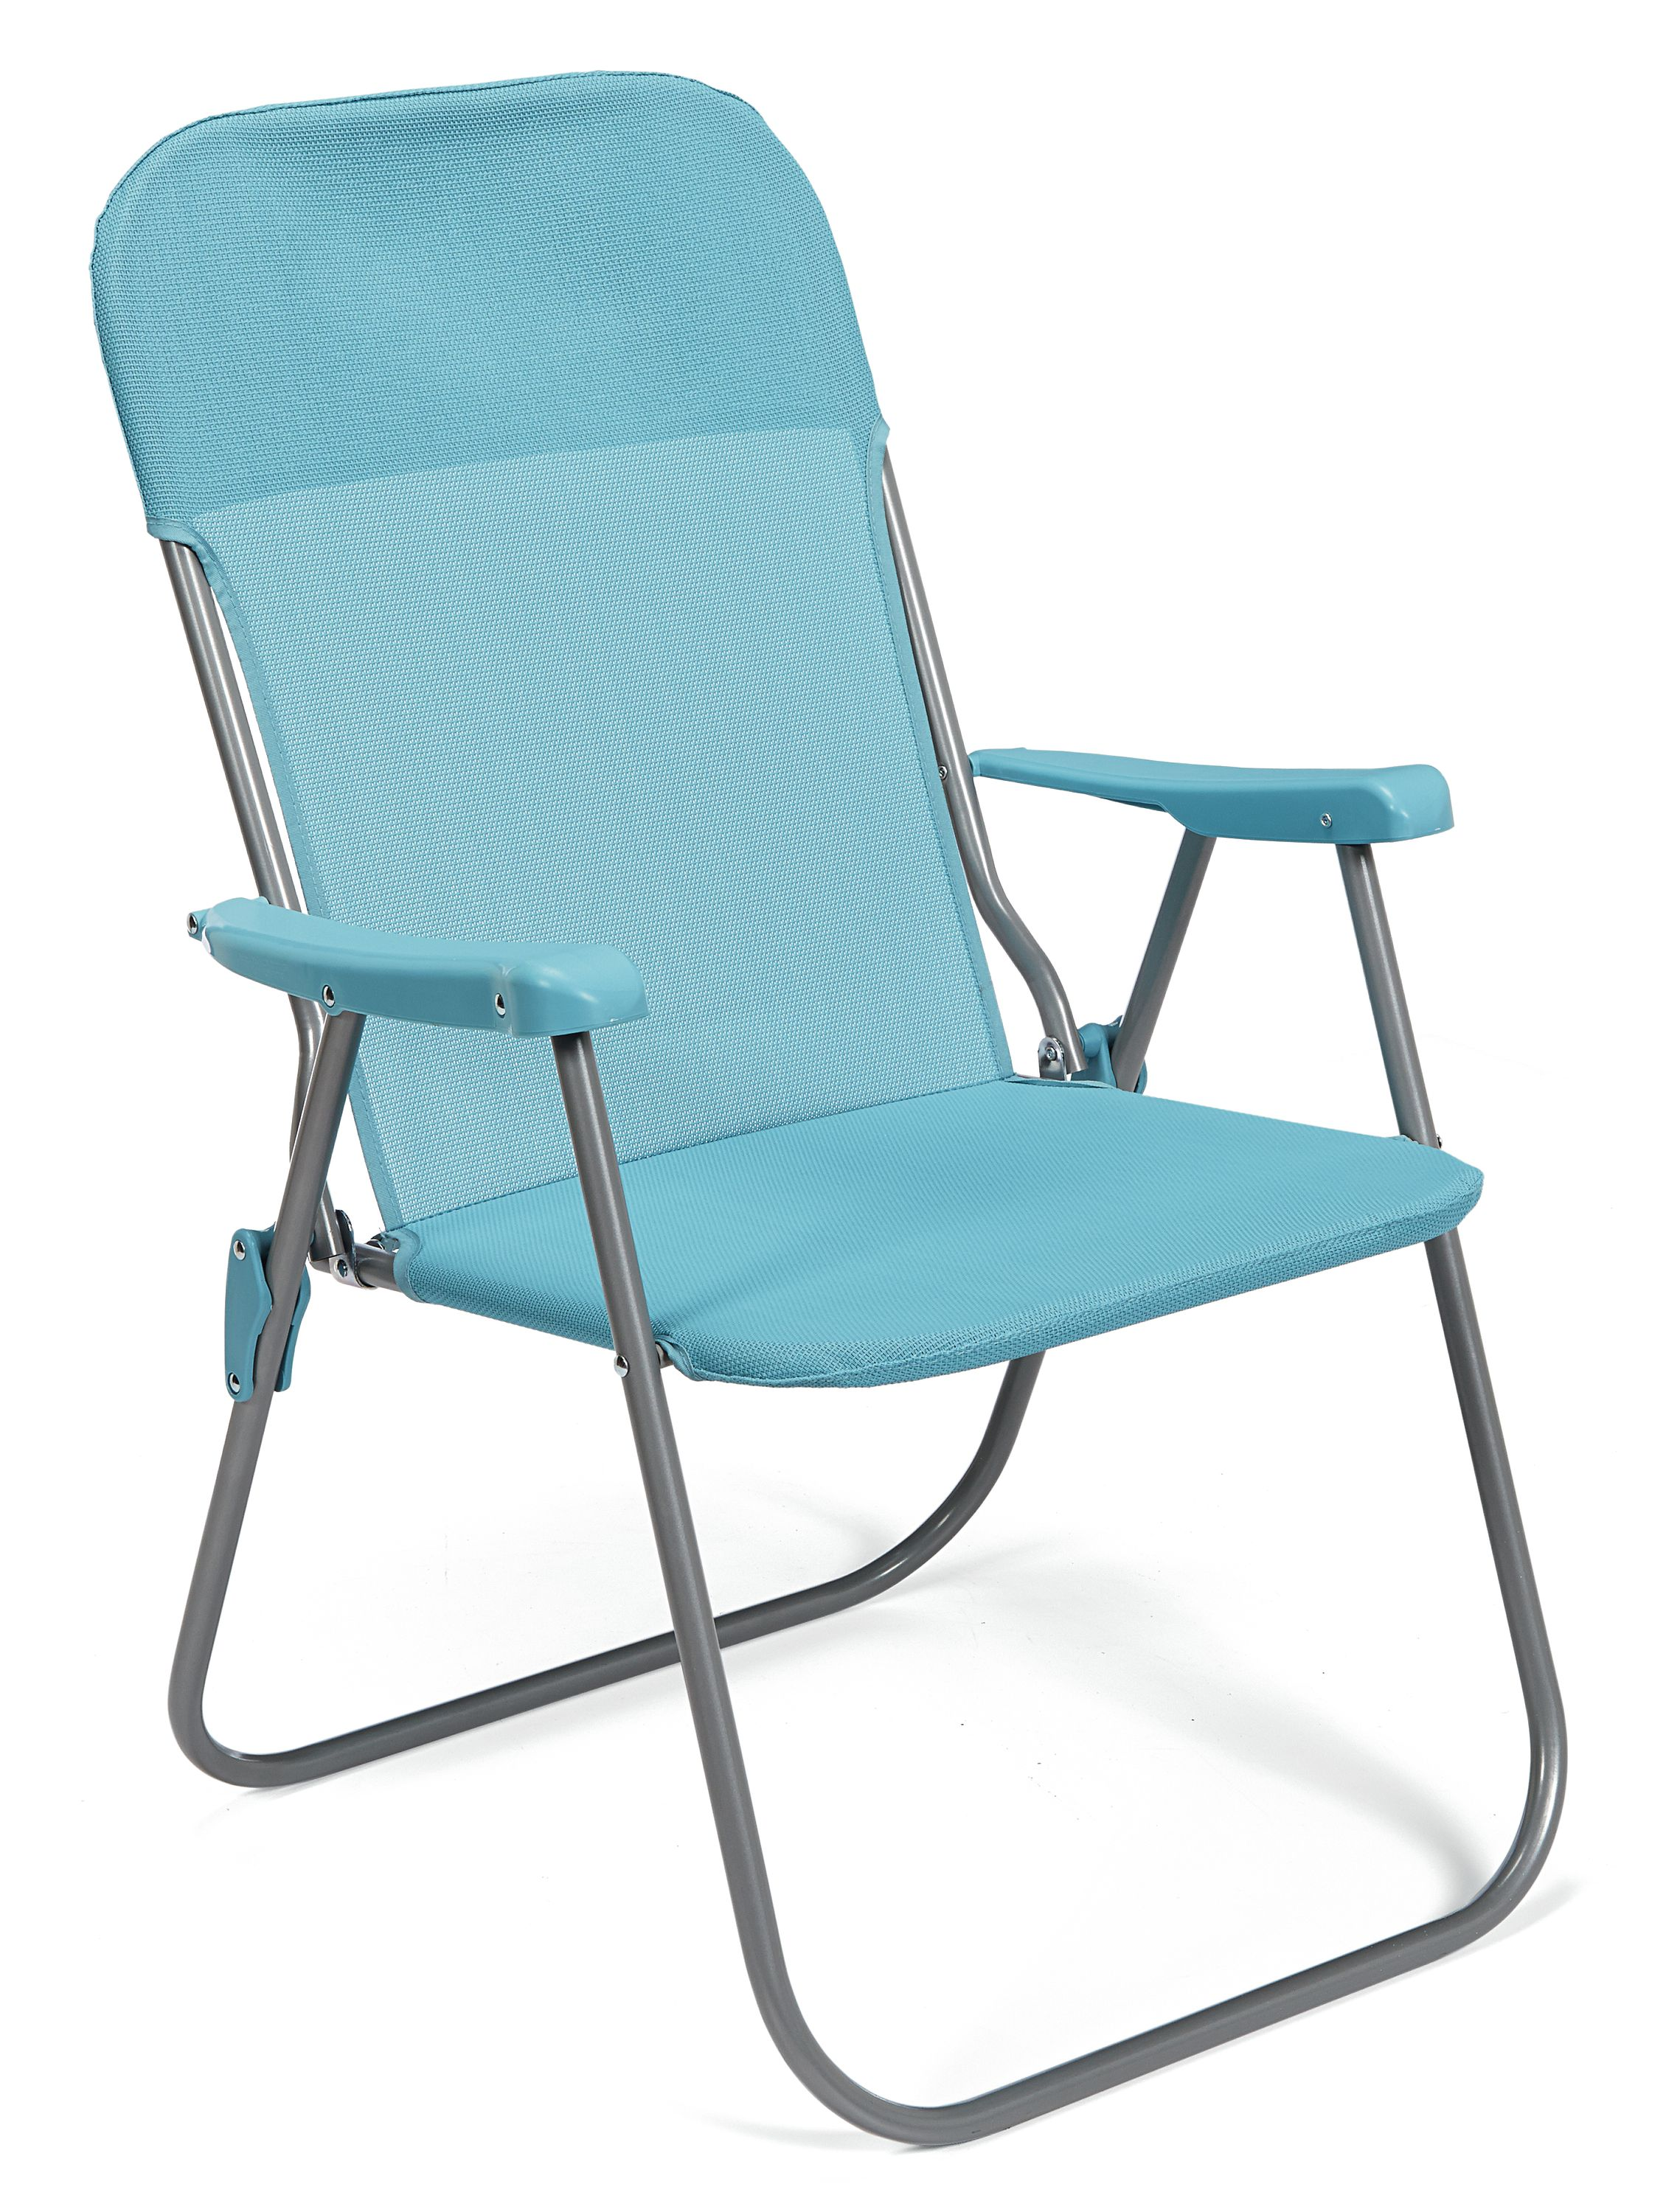 Patio Furniture Clearance Ontario Canada: Sears Patio Furniture Clearance